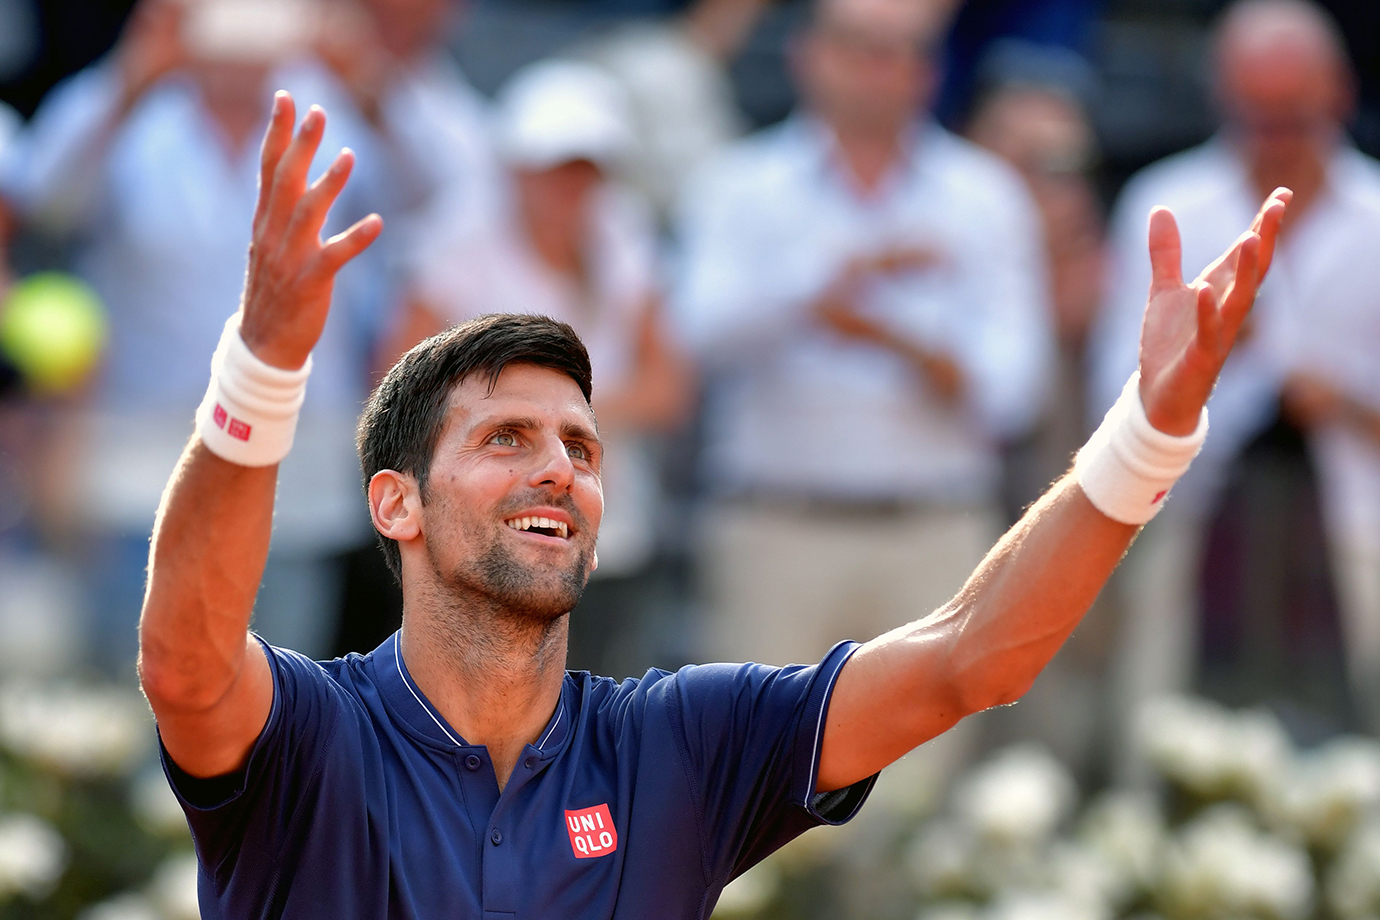 Novak Djokovic of Serbia celebrates after winning his third round match against Roberto Bautista dur